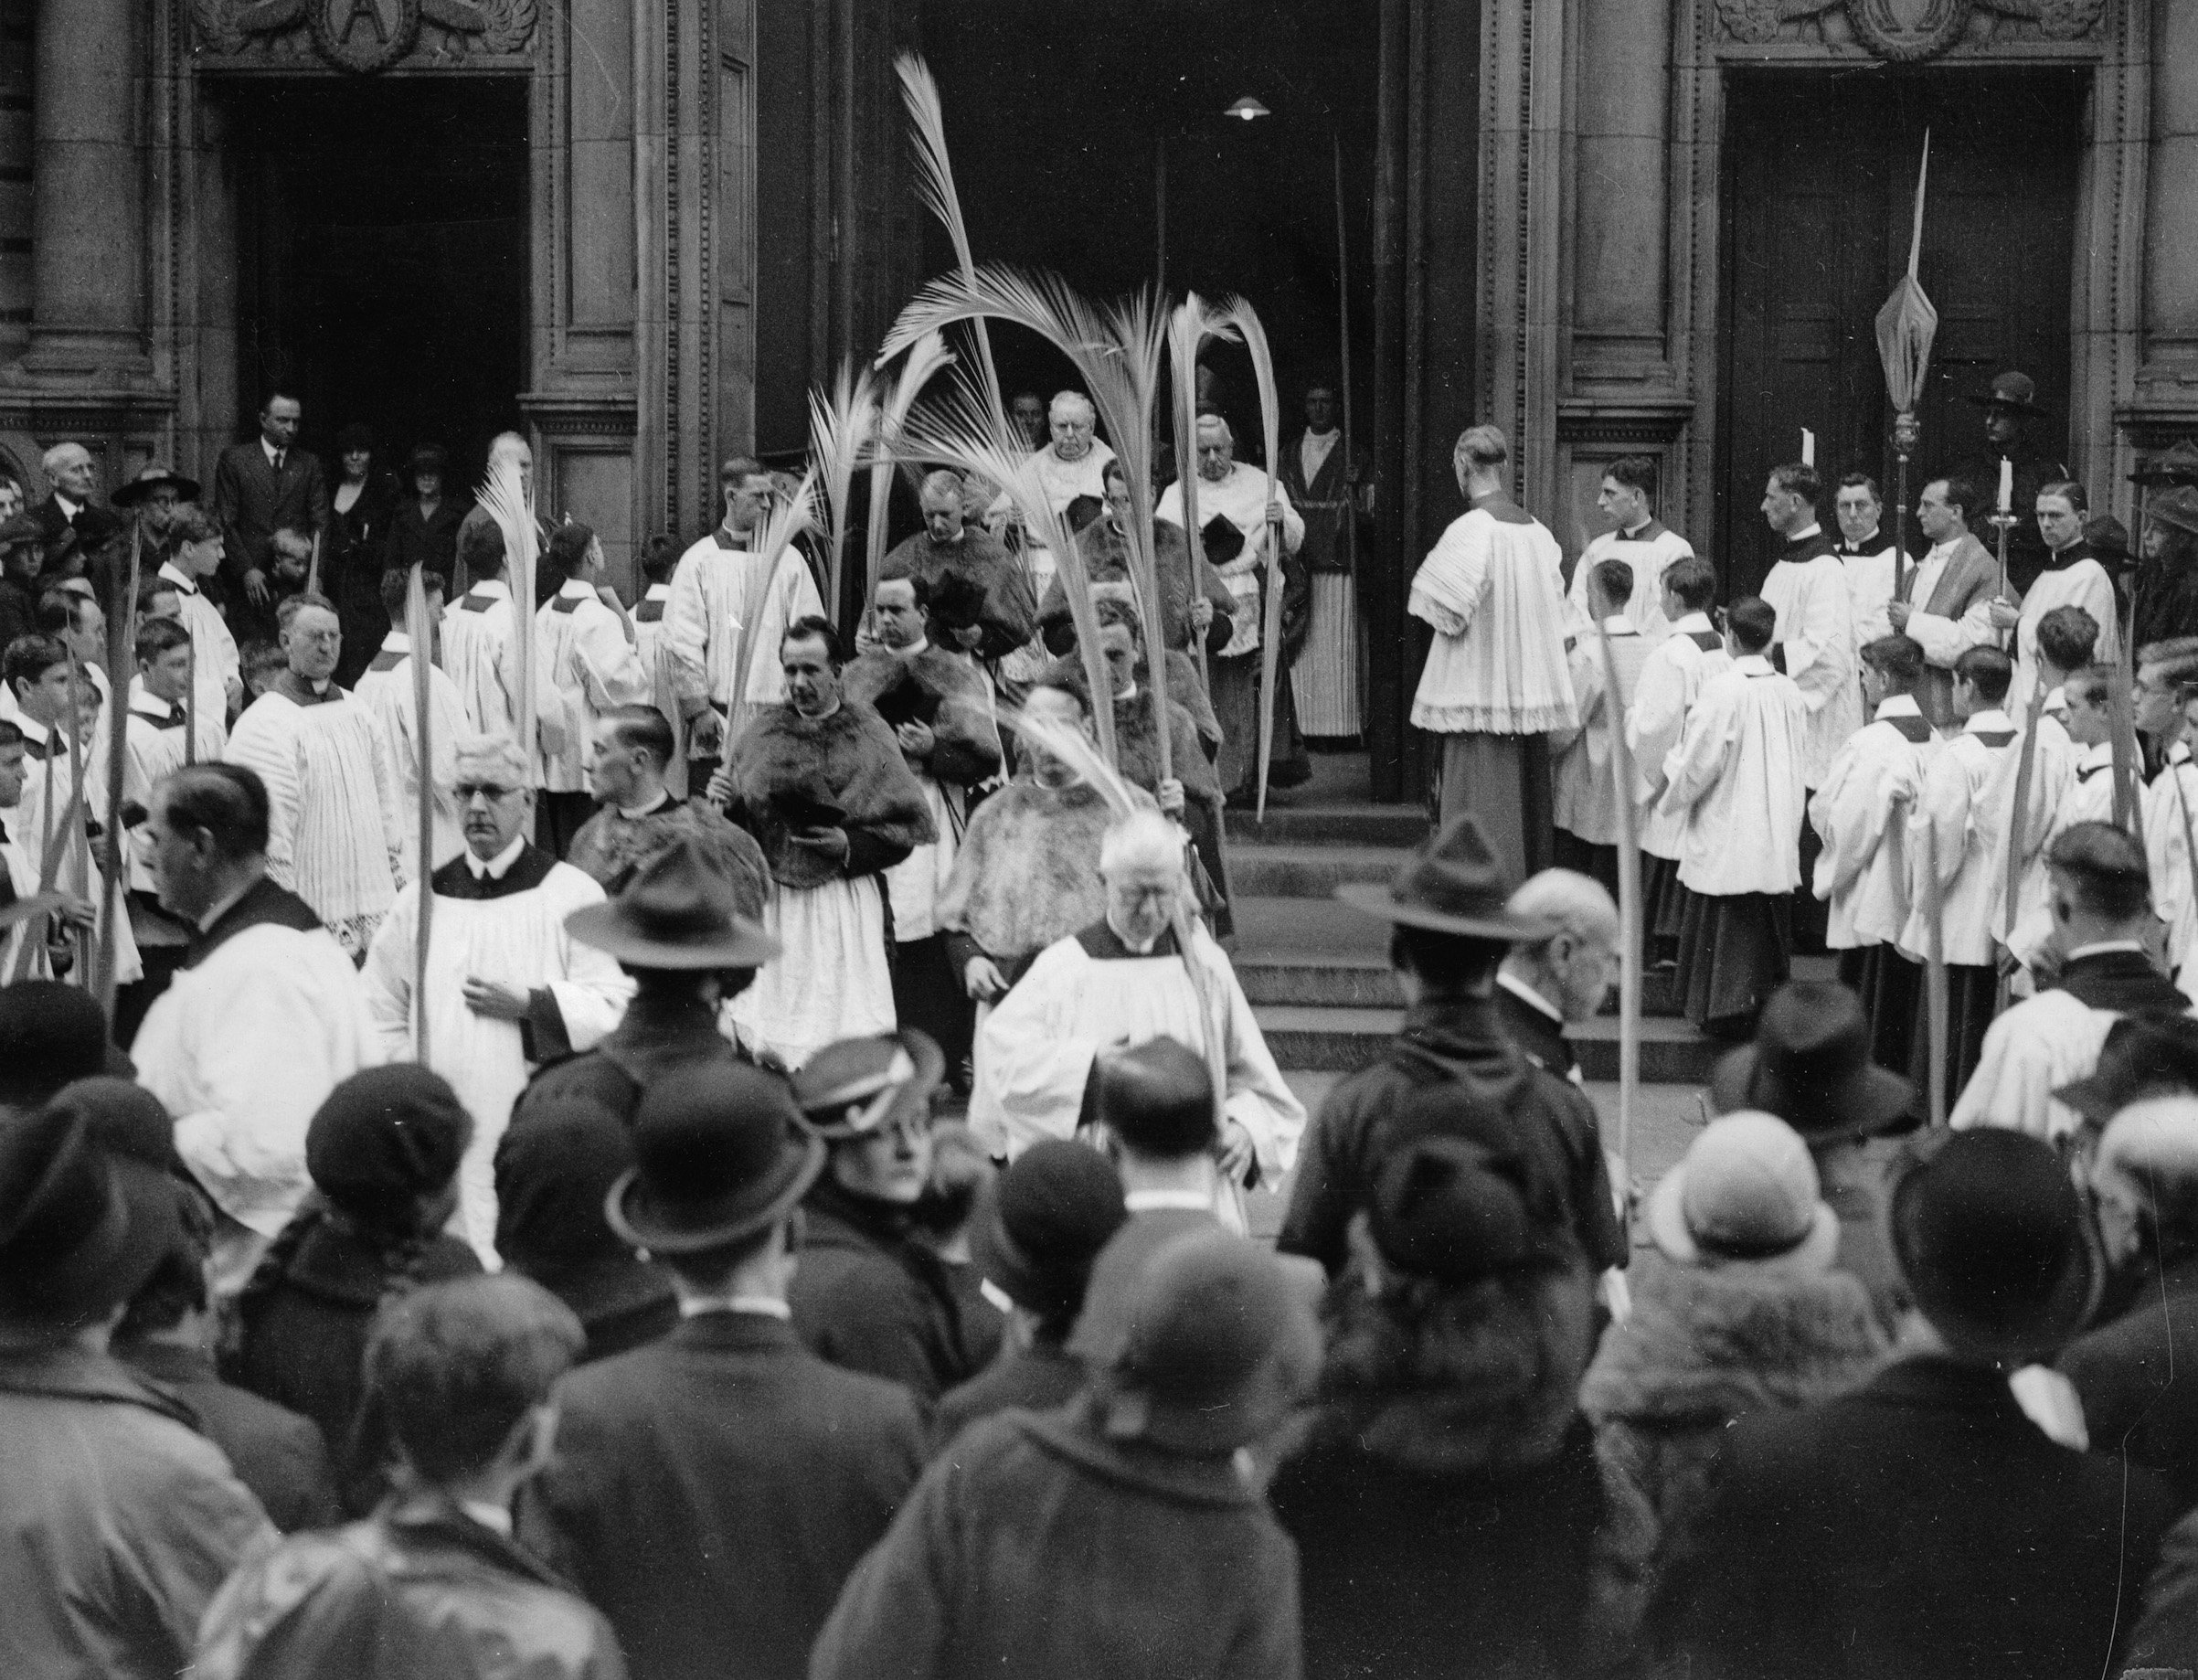 Procession on Palm Sunday in England, ca. 1930.